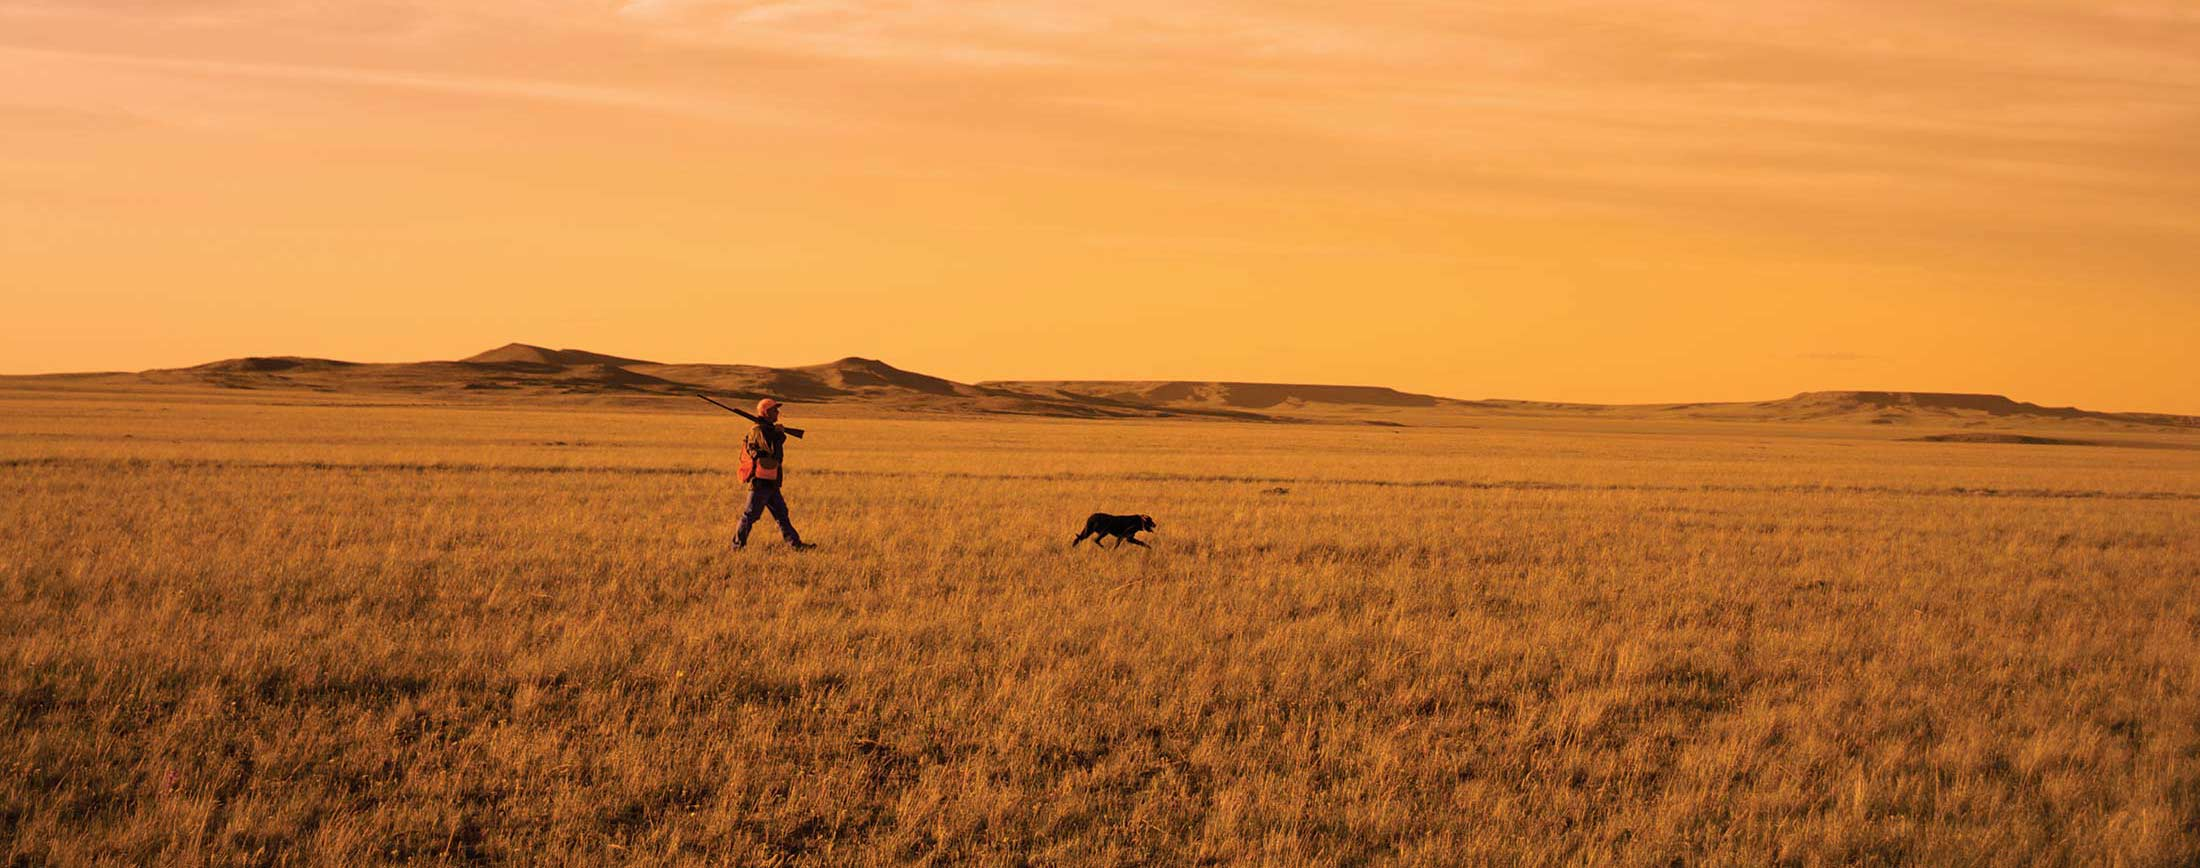 Hunting in Montana's Missouri River Country